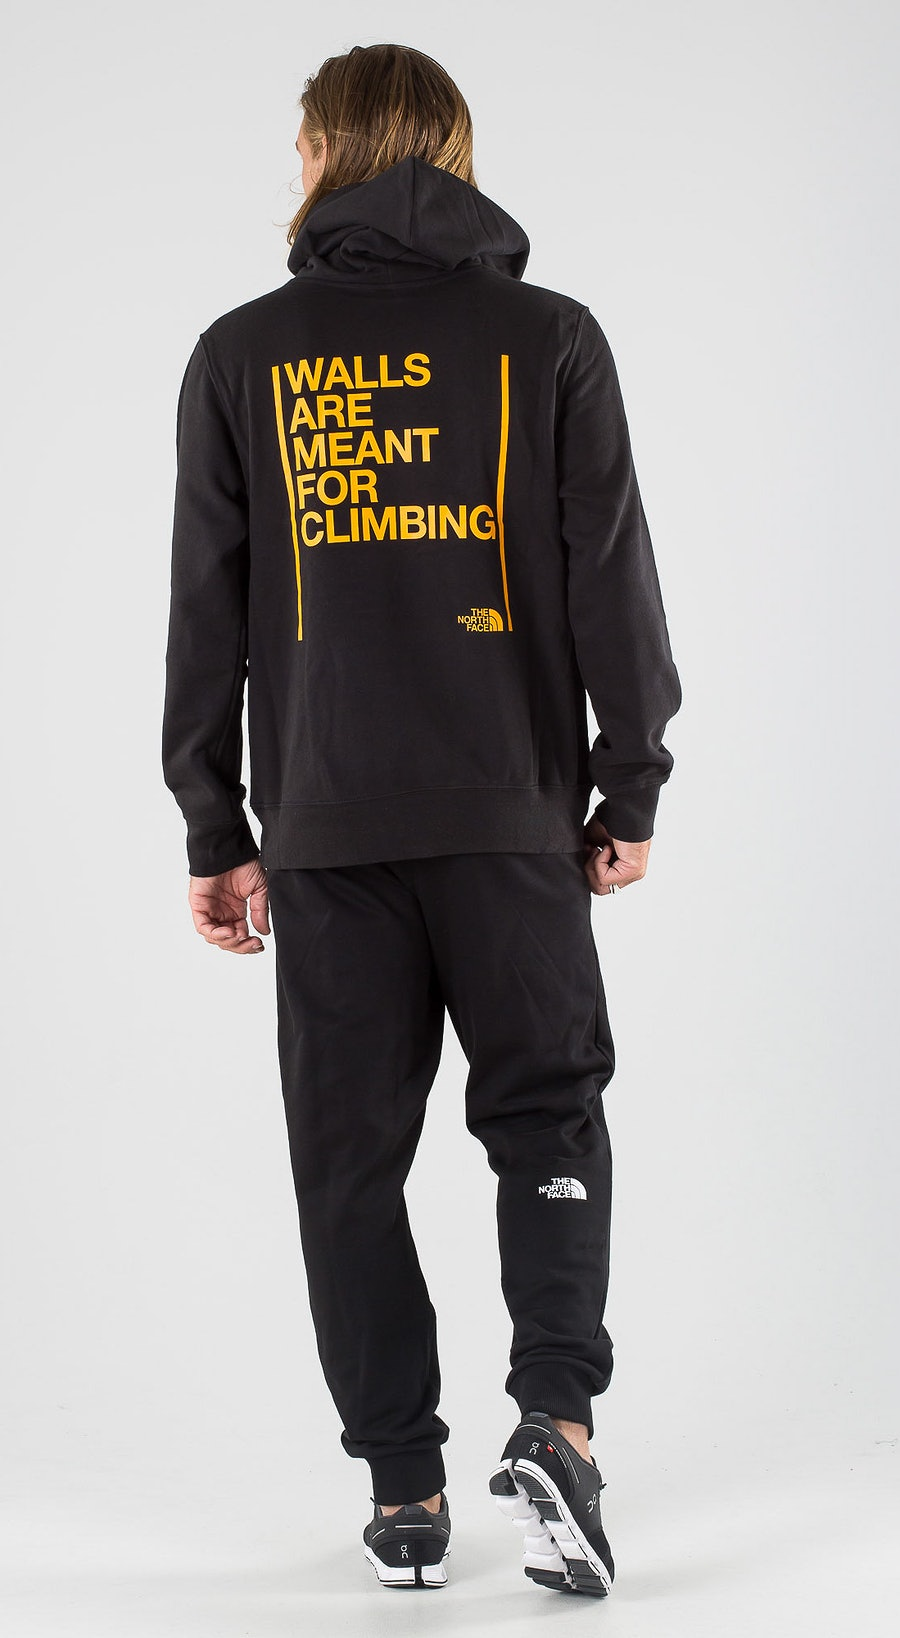 The North Face Walls Are Meant For Climbing Tnf Black Outfit Multi